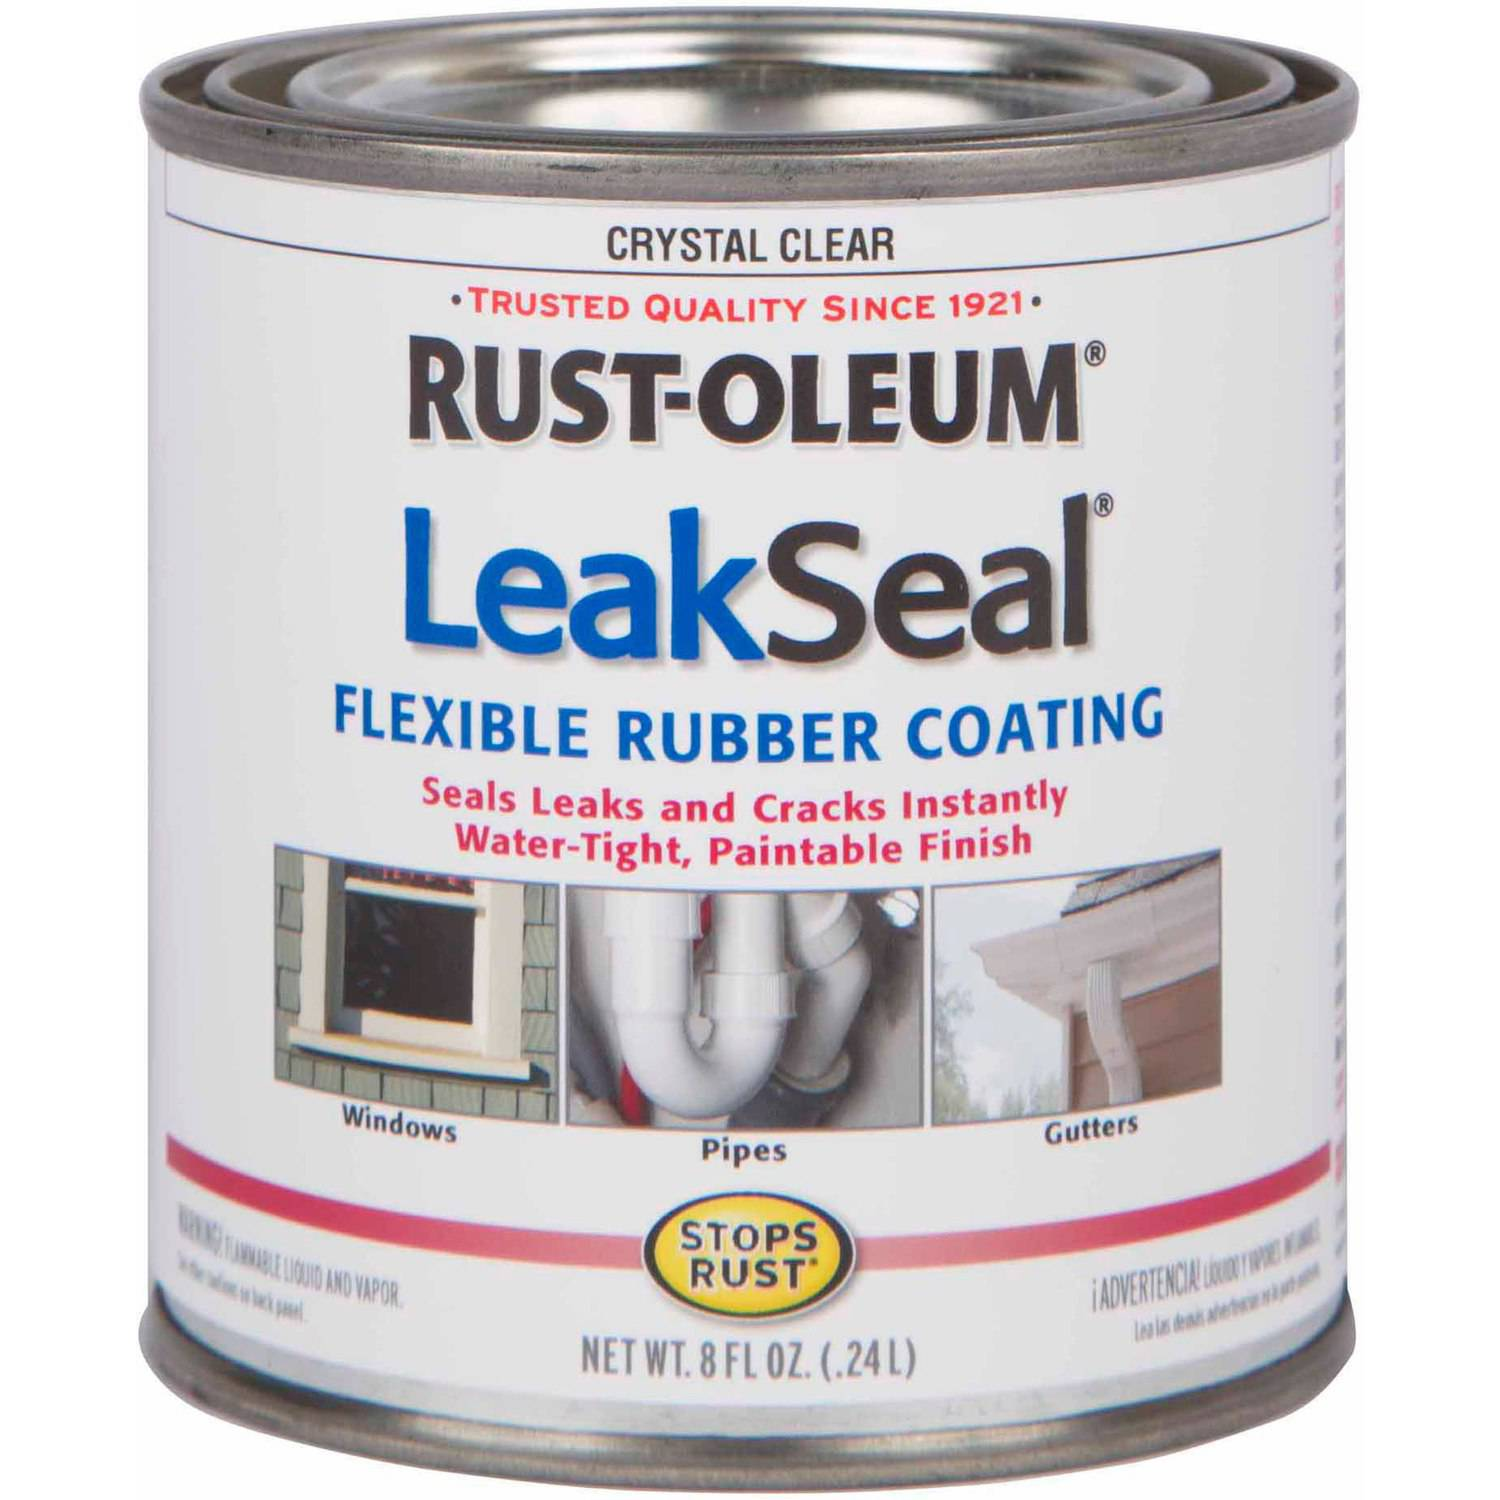 Rust-Oleum LeakSeal Flexible Rubber Coating, 1/2 pt, Clear